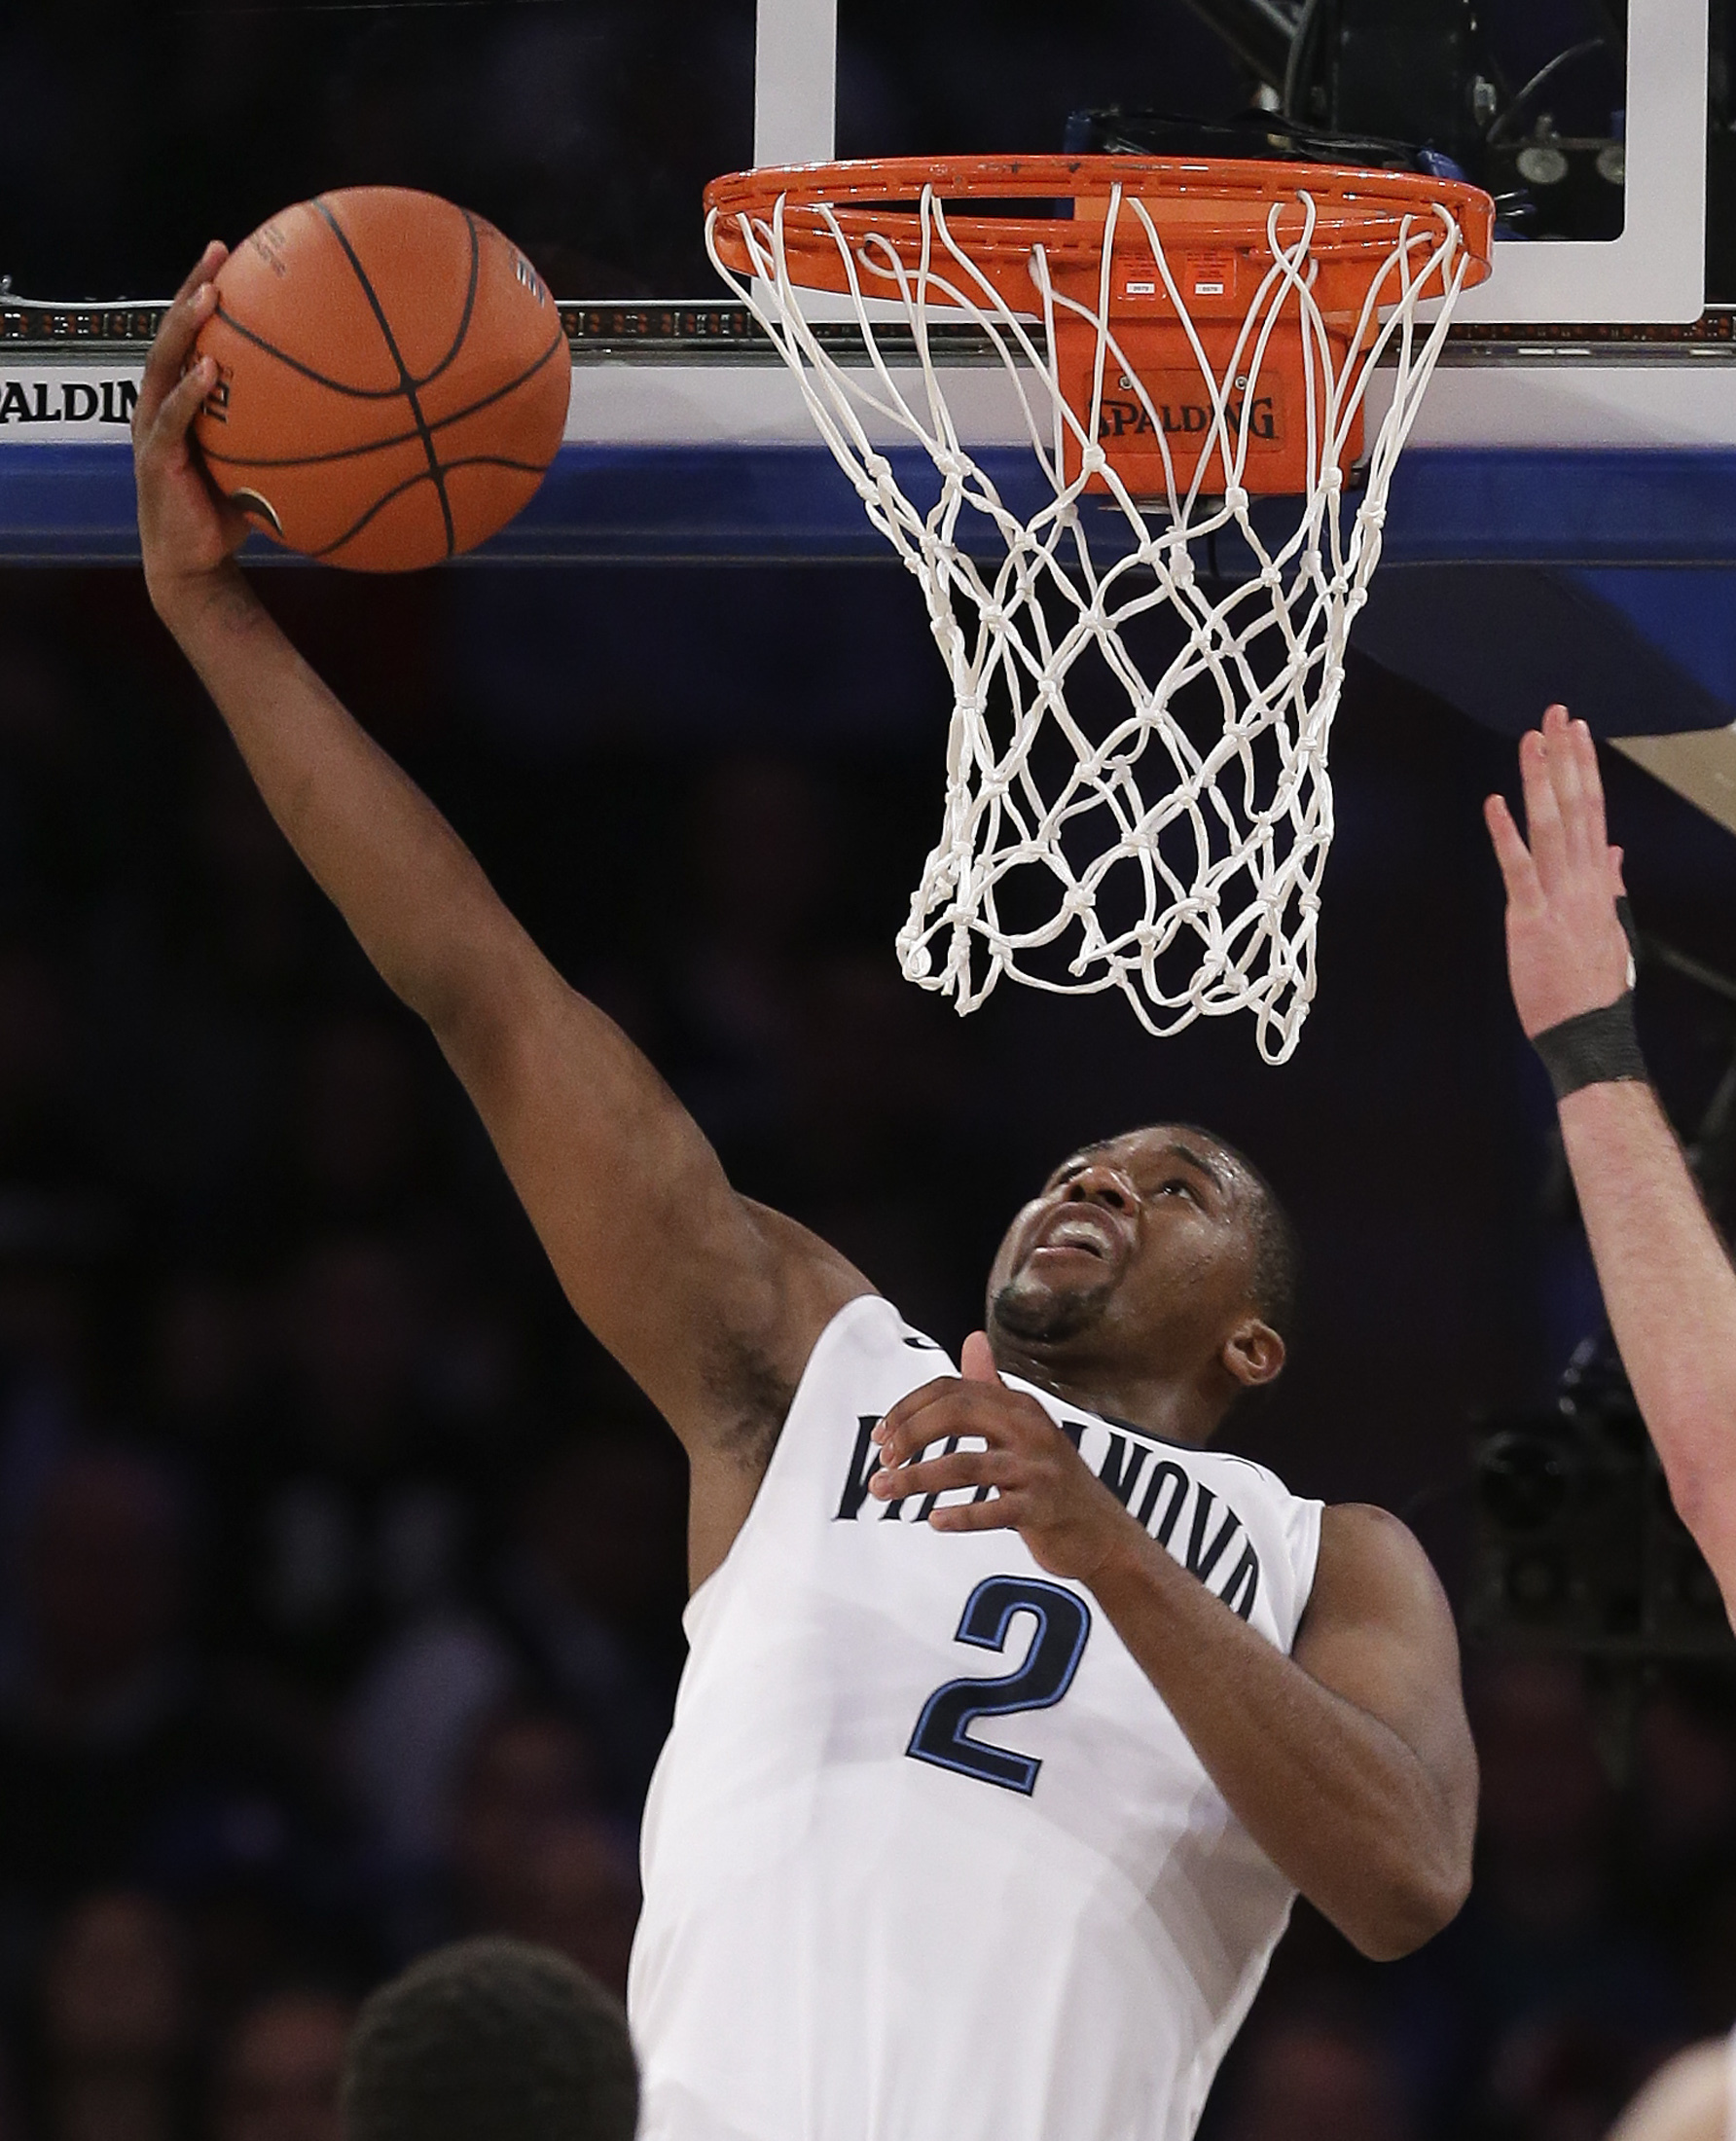 Villanova forward Kris Jenkins (2) goes up to dunk against Providence in the second half of an NCAA college basketball game during the semifinals of the Big East men's tournament, Friday, March 11, 2016, in New York. Villanova won 76-68. (AP Photo/Julie J